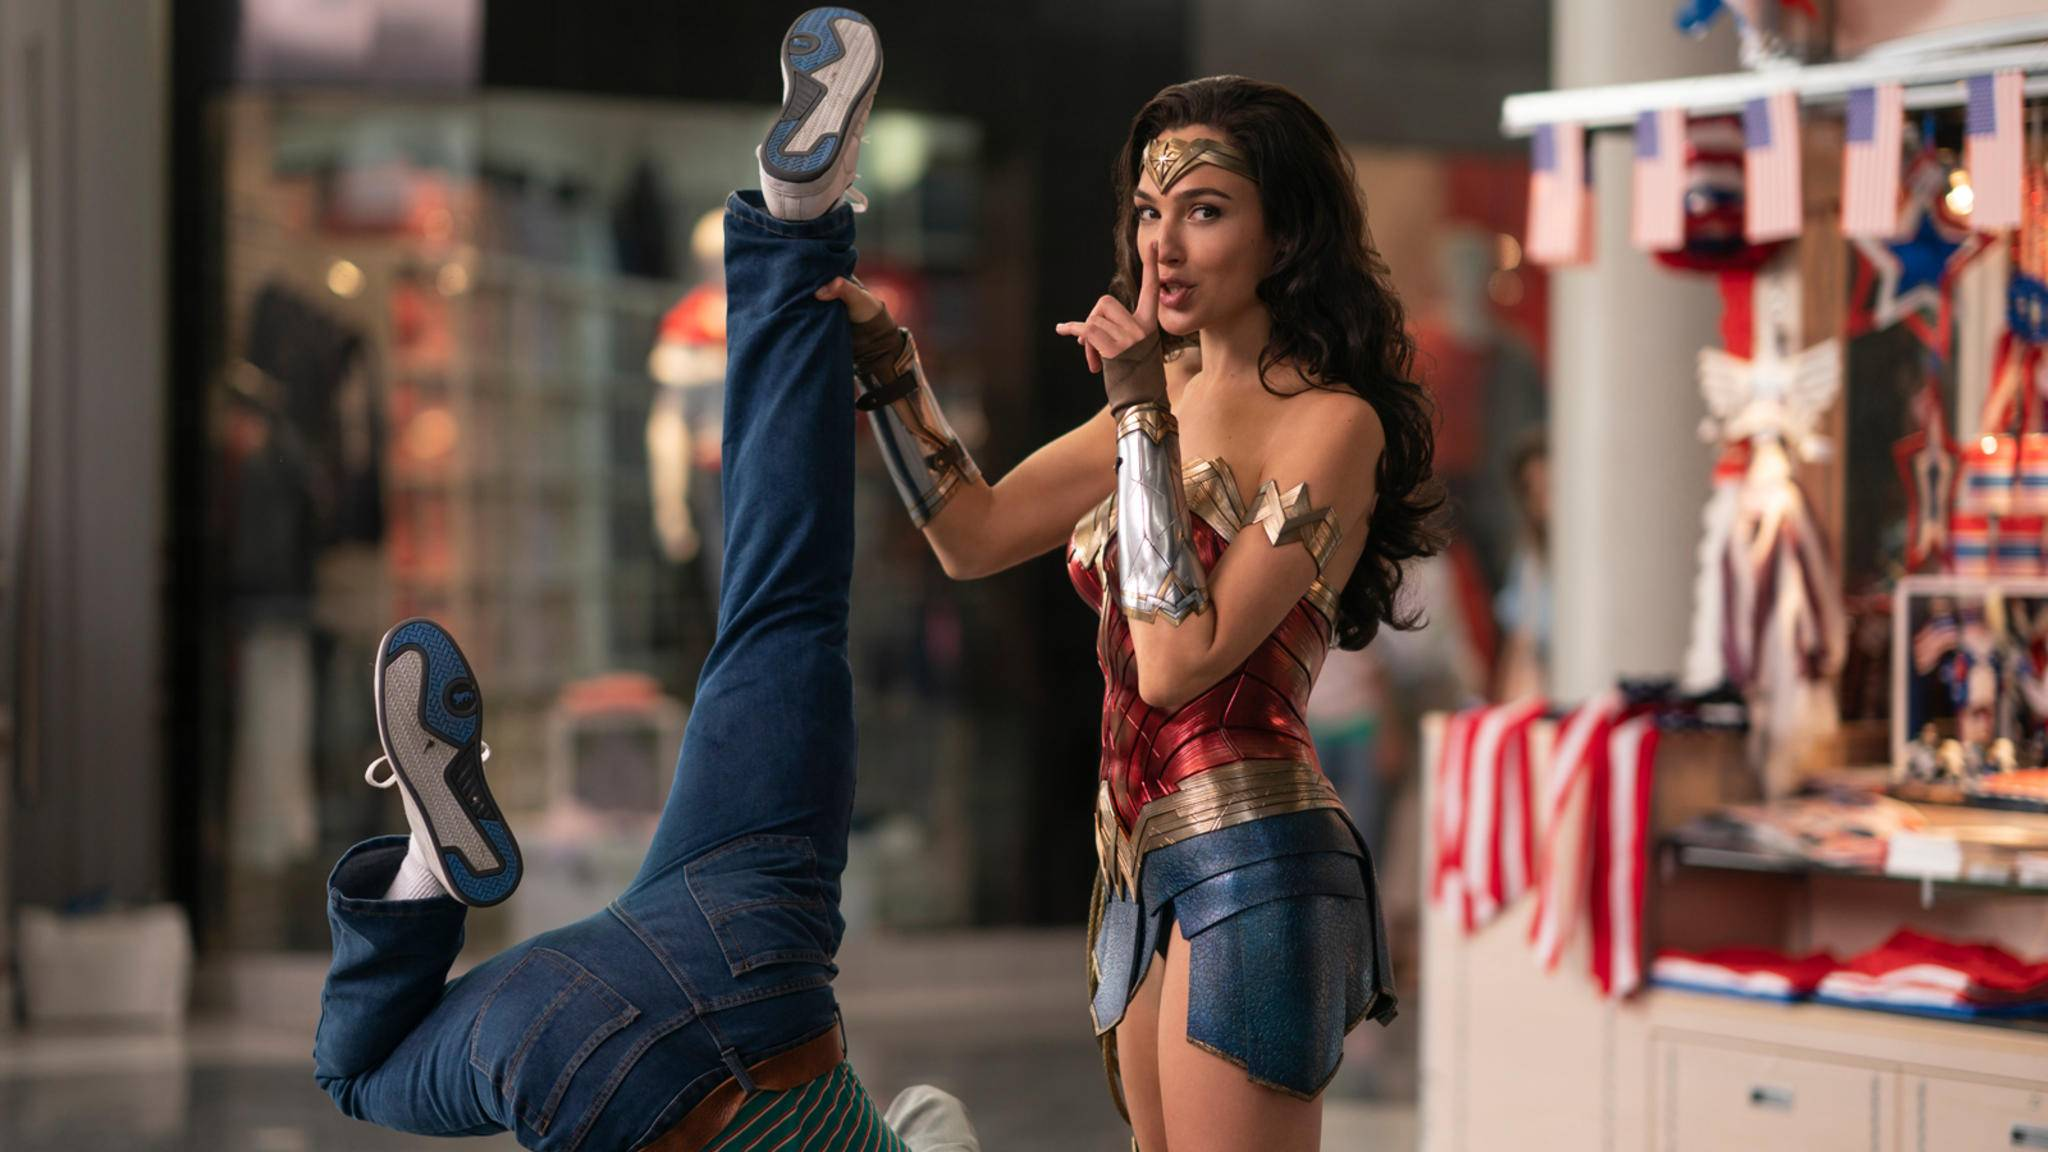 Wonder Woman 1984 Gal Gadot Mall-Kampfszene